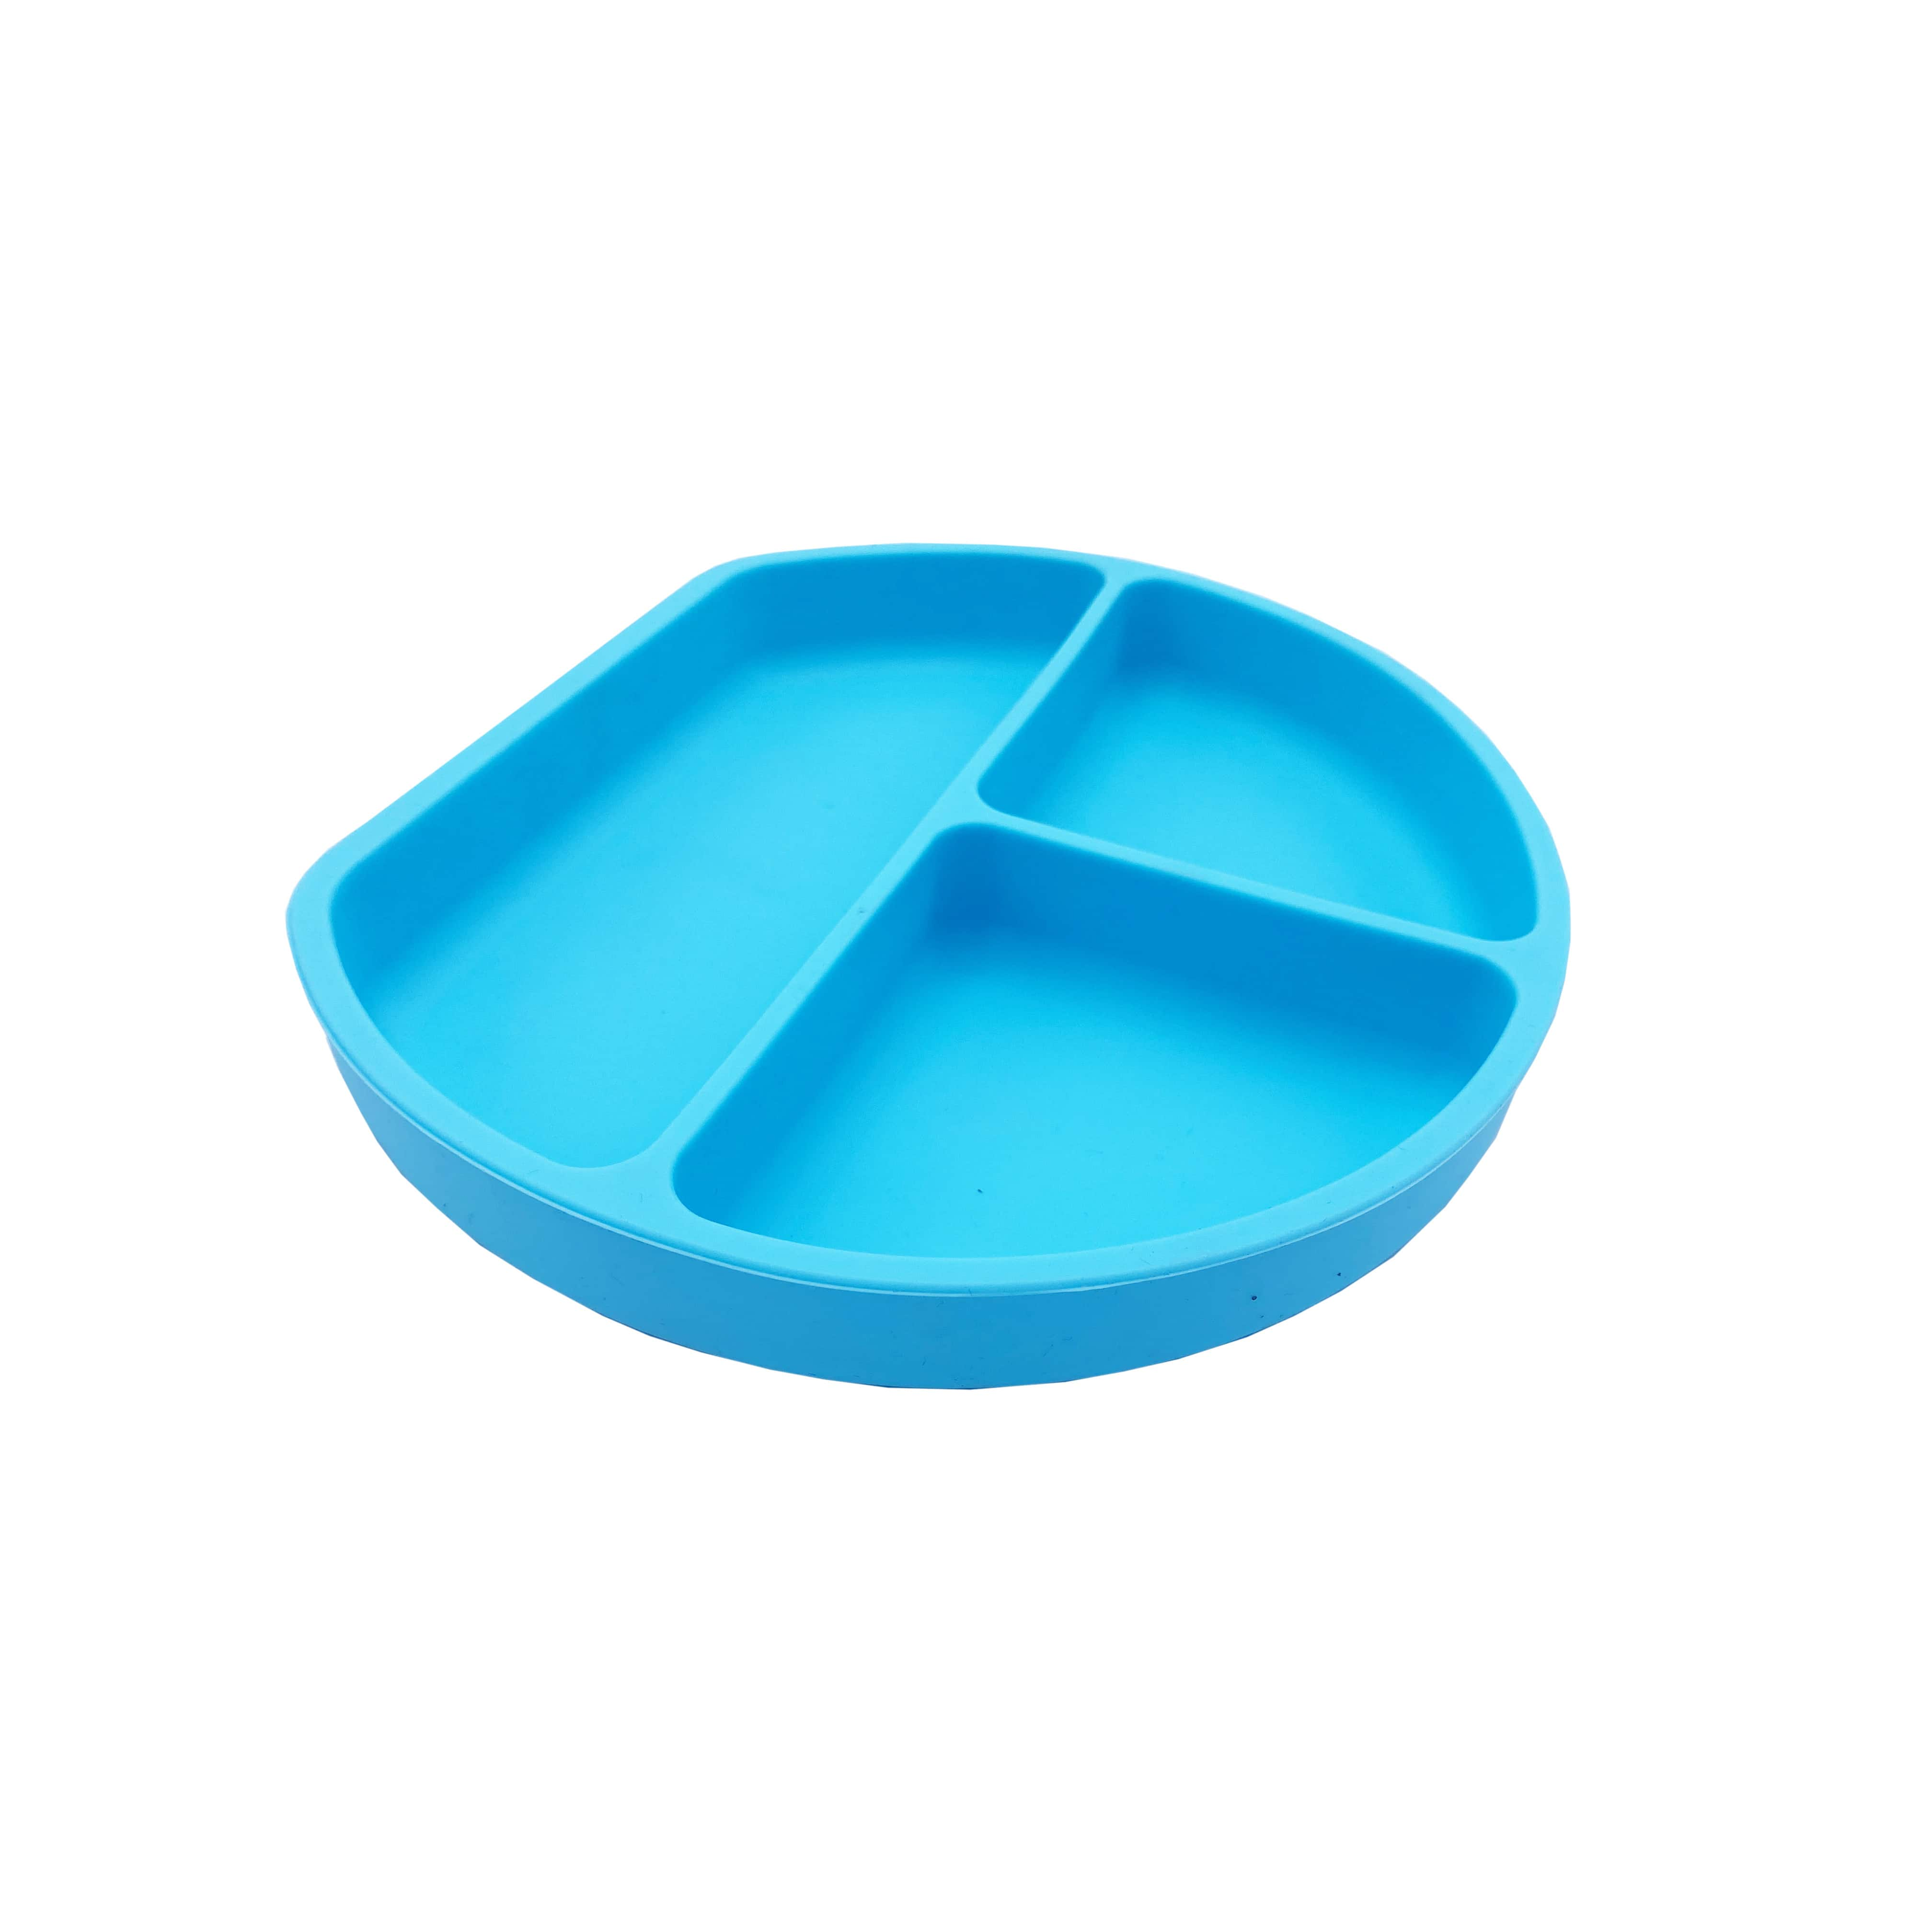 Amour | Amour Silicone Grip Self Feeding Dish, Suction Plate, Baby Toddler Plate (Blue)